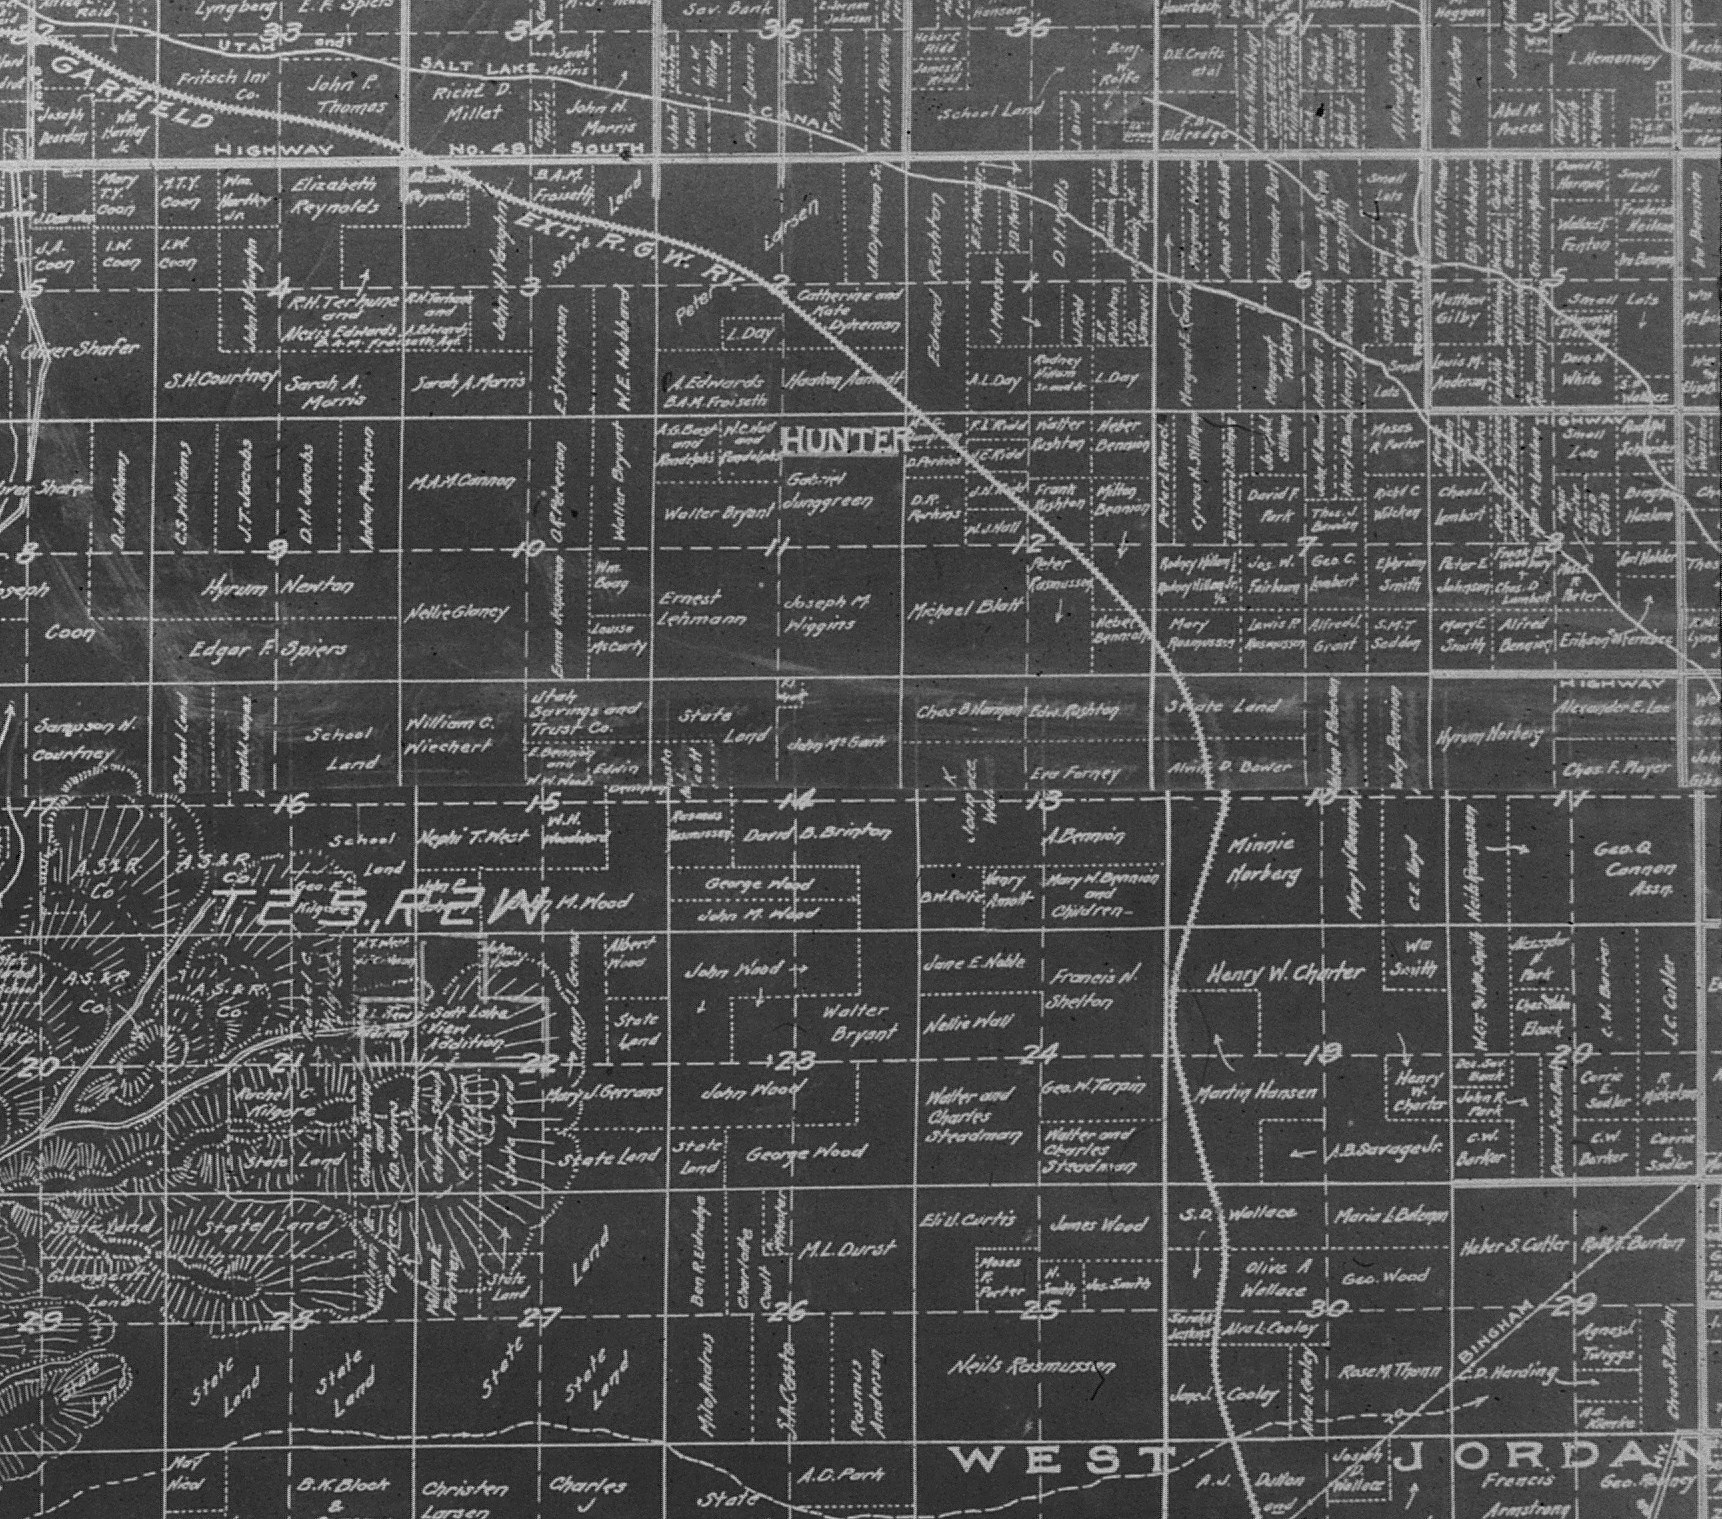 Salt Lake County Archives Salt Lake County Parcel Map on cuyahoga county parcel maps, pinal county parcel maps, stanislaus county parcel maps, garfield county parcel maps, siskiyou county parcel maps, summit county parcel maps,